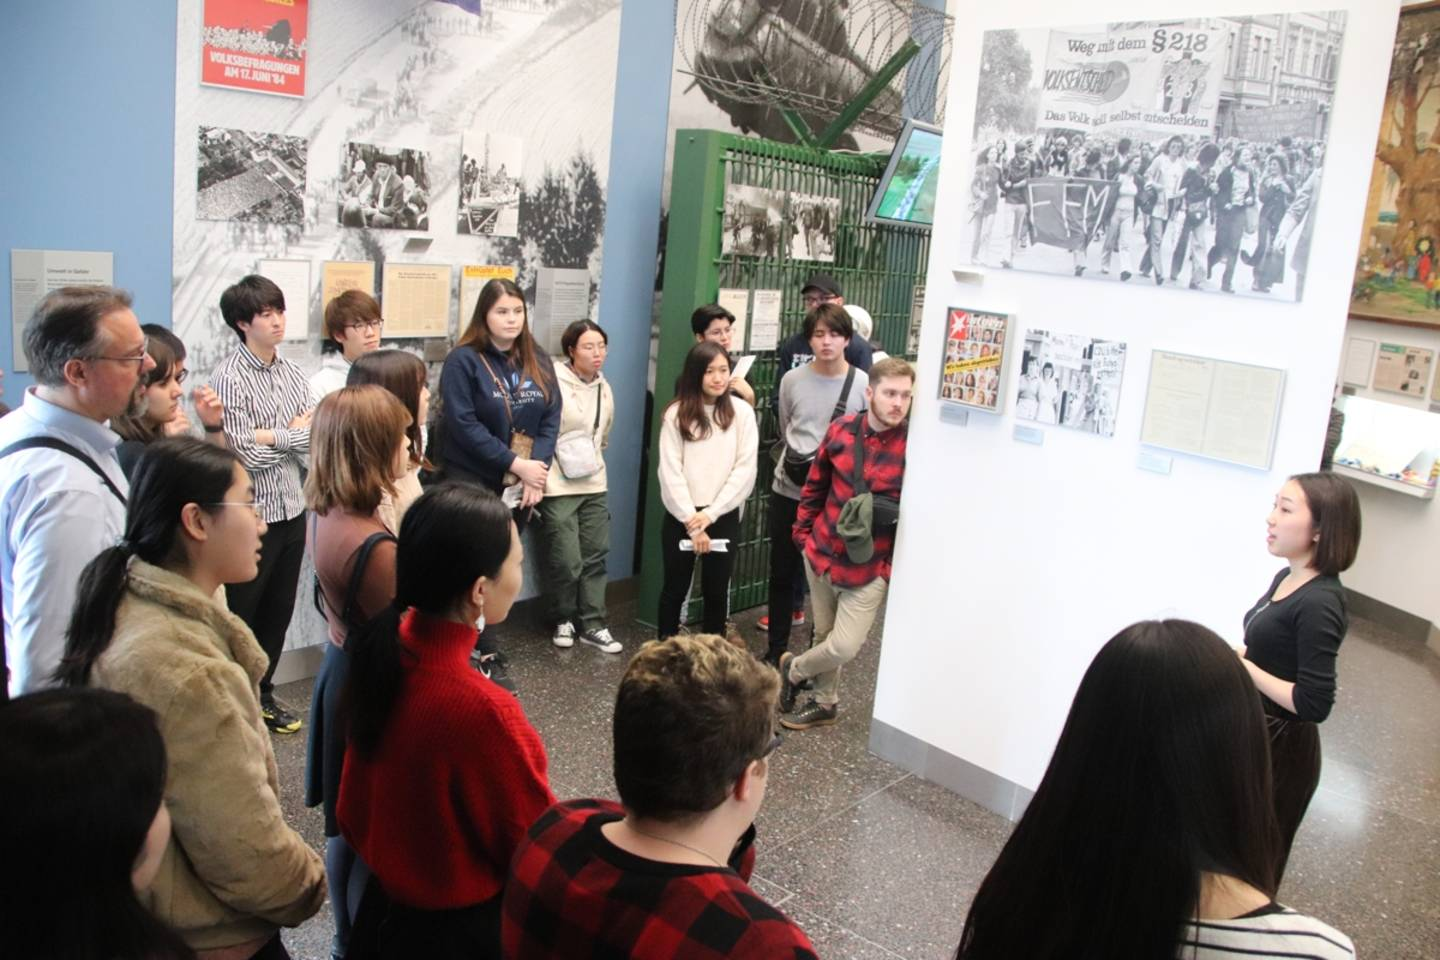 Group of students listening to the guide in the Haus der Geschichte.